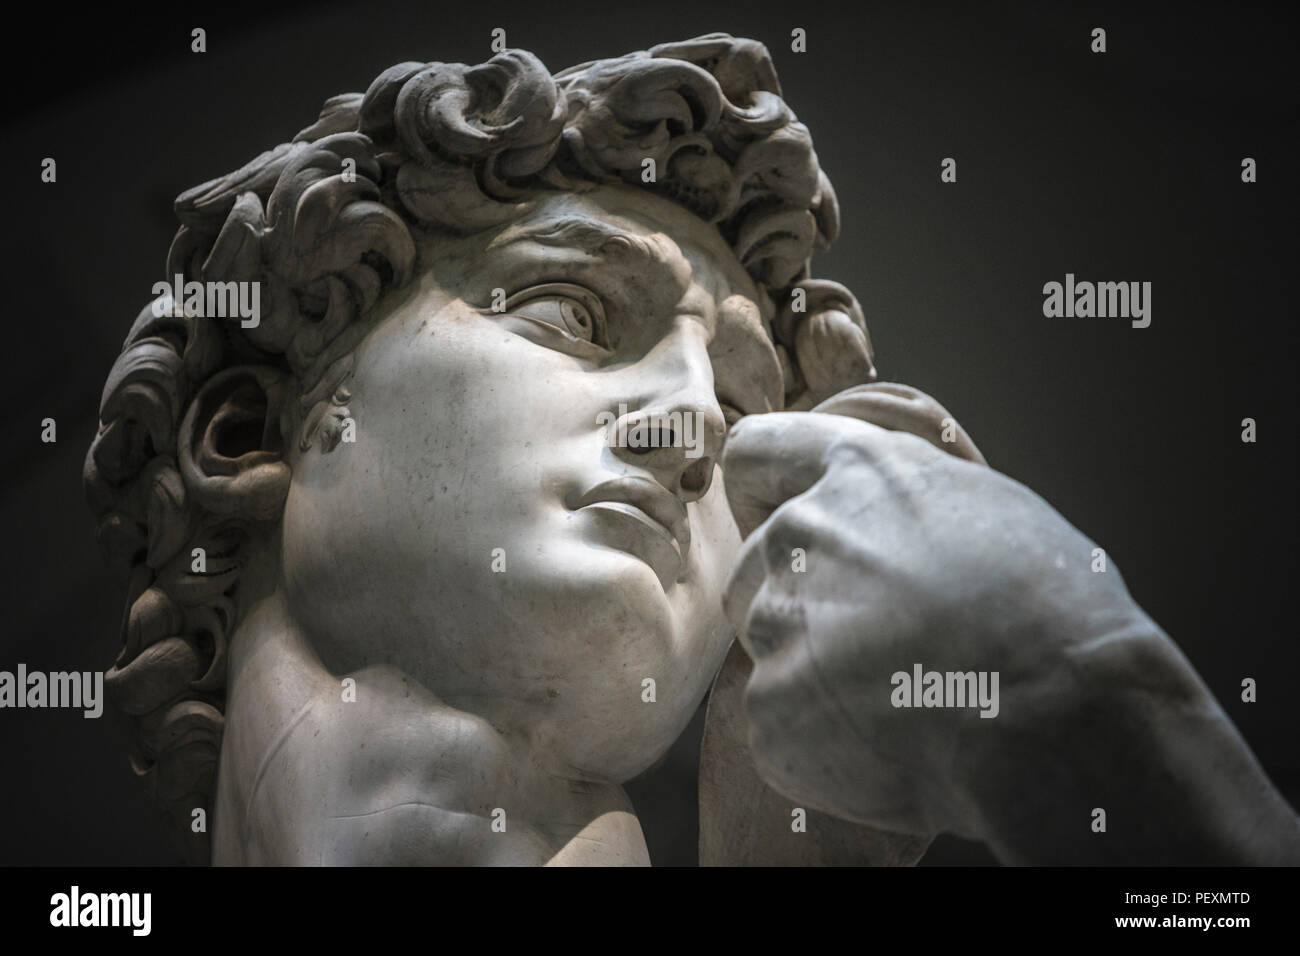 Head of statue of David by Michelangelo, Accademia Gallery, Florence, Tuscany, Italy Stock Photo